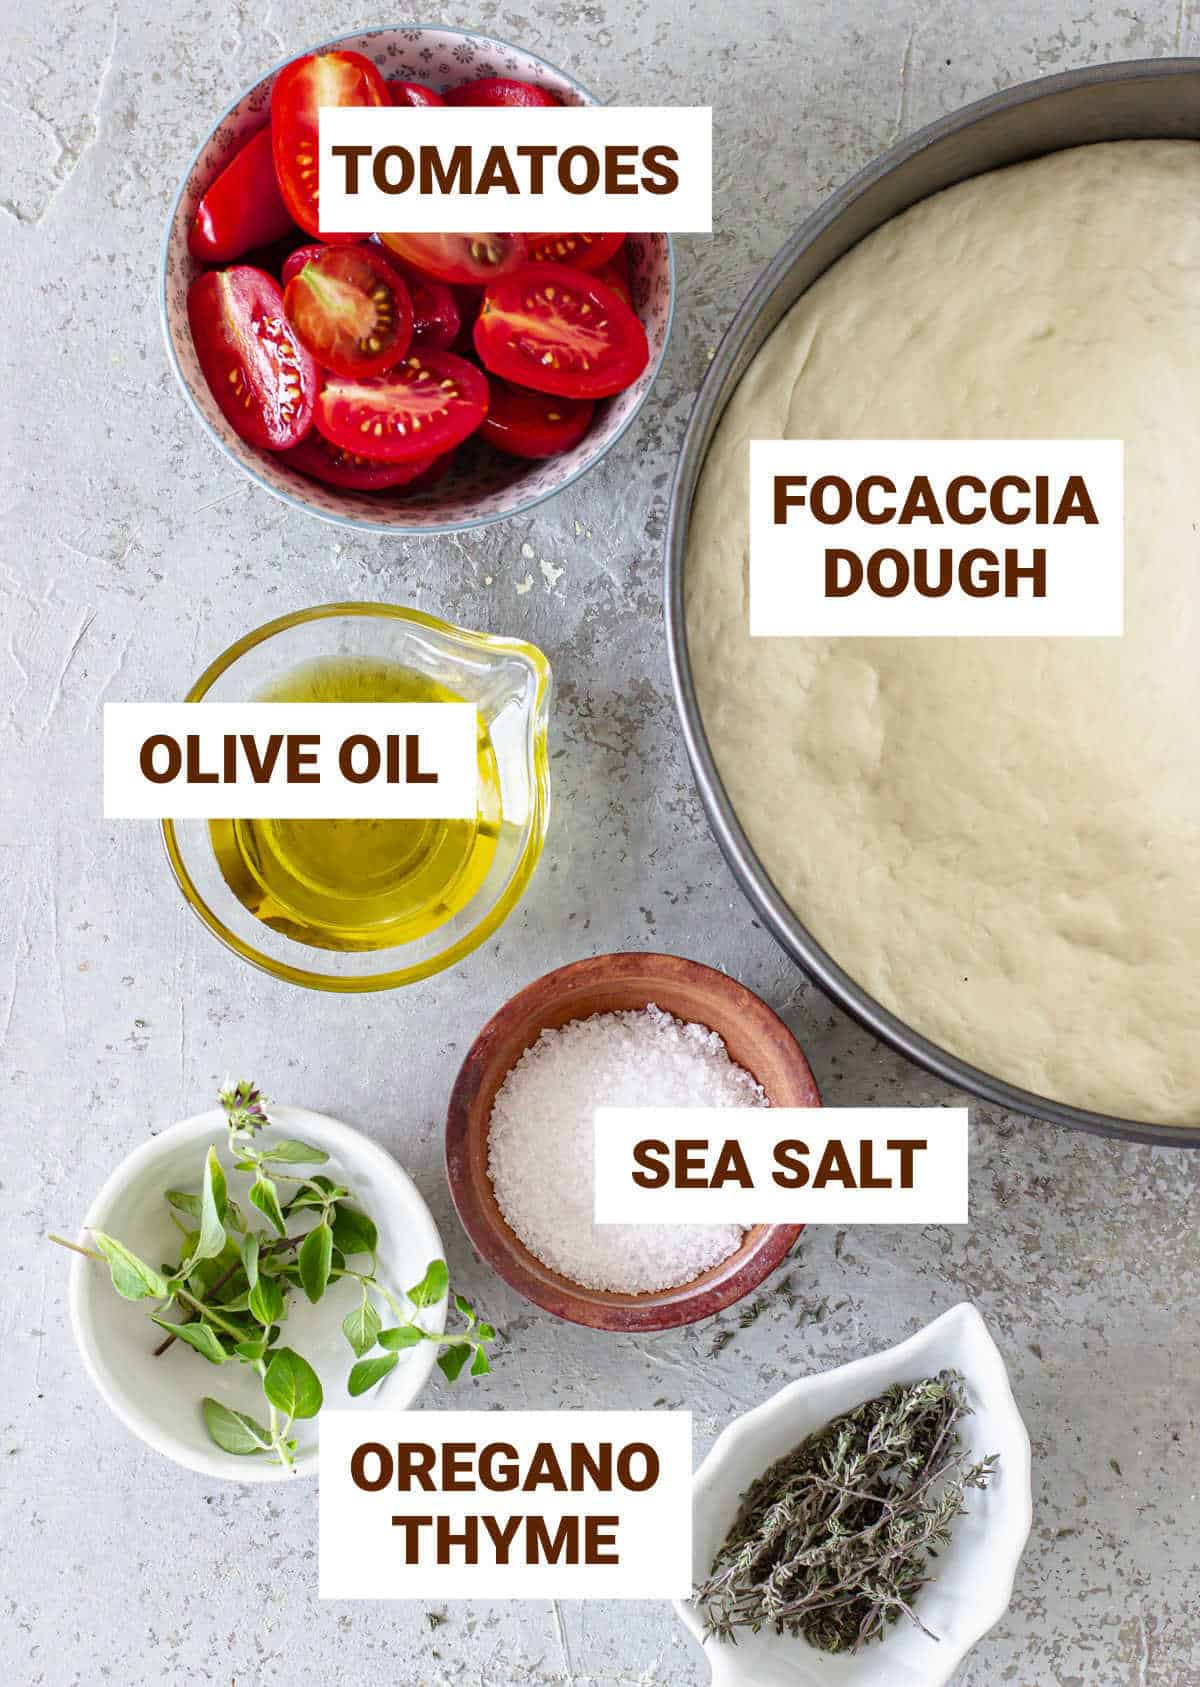 Grey surface with ingredients for tomato focaccia including dough, oil, salt and herbs